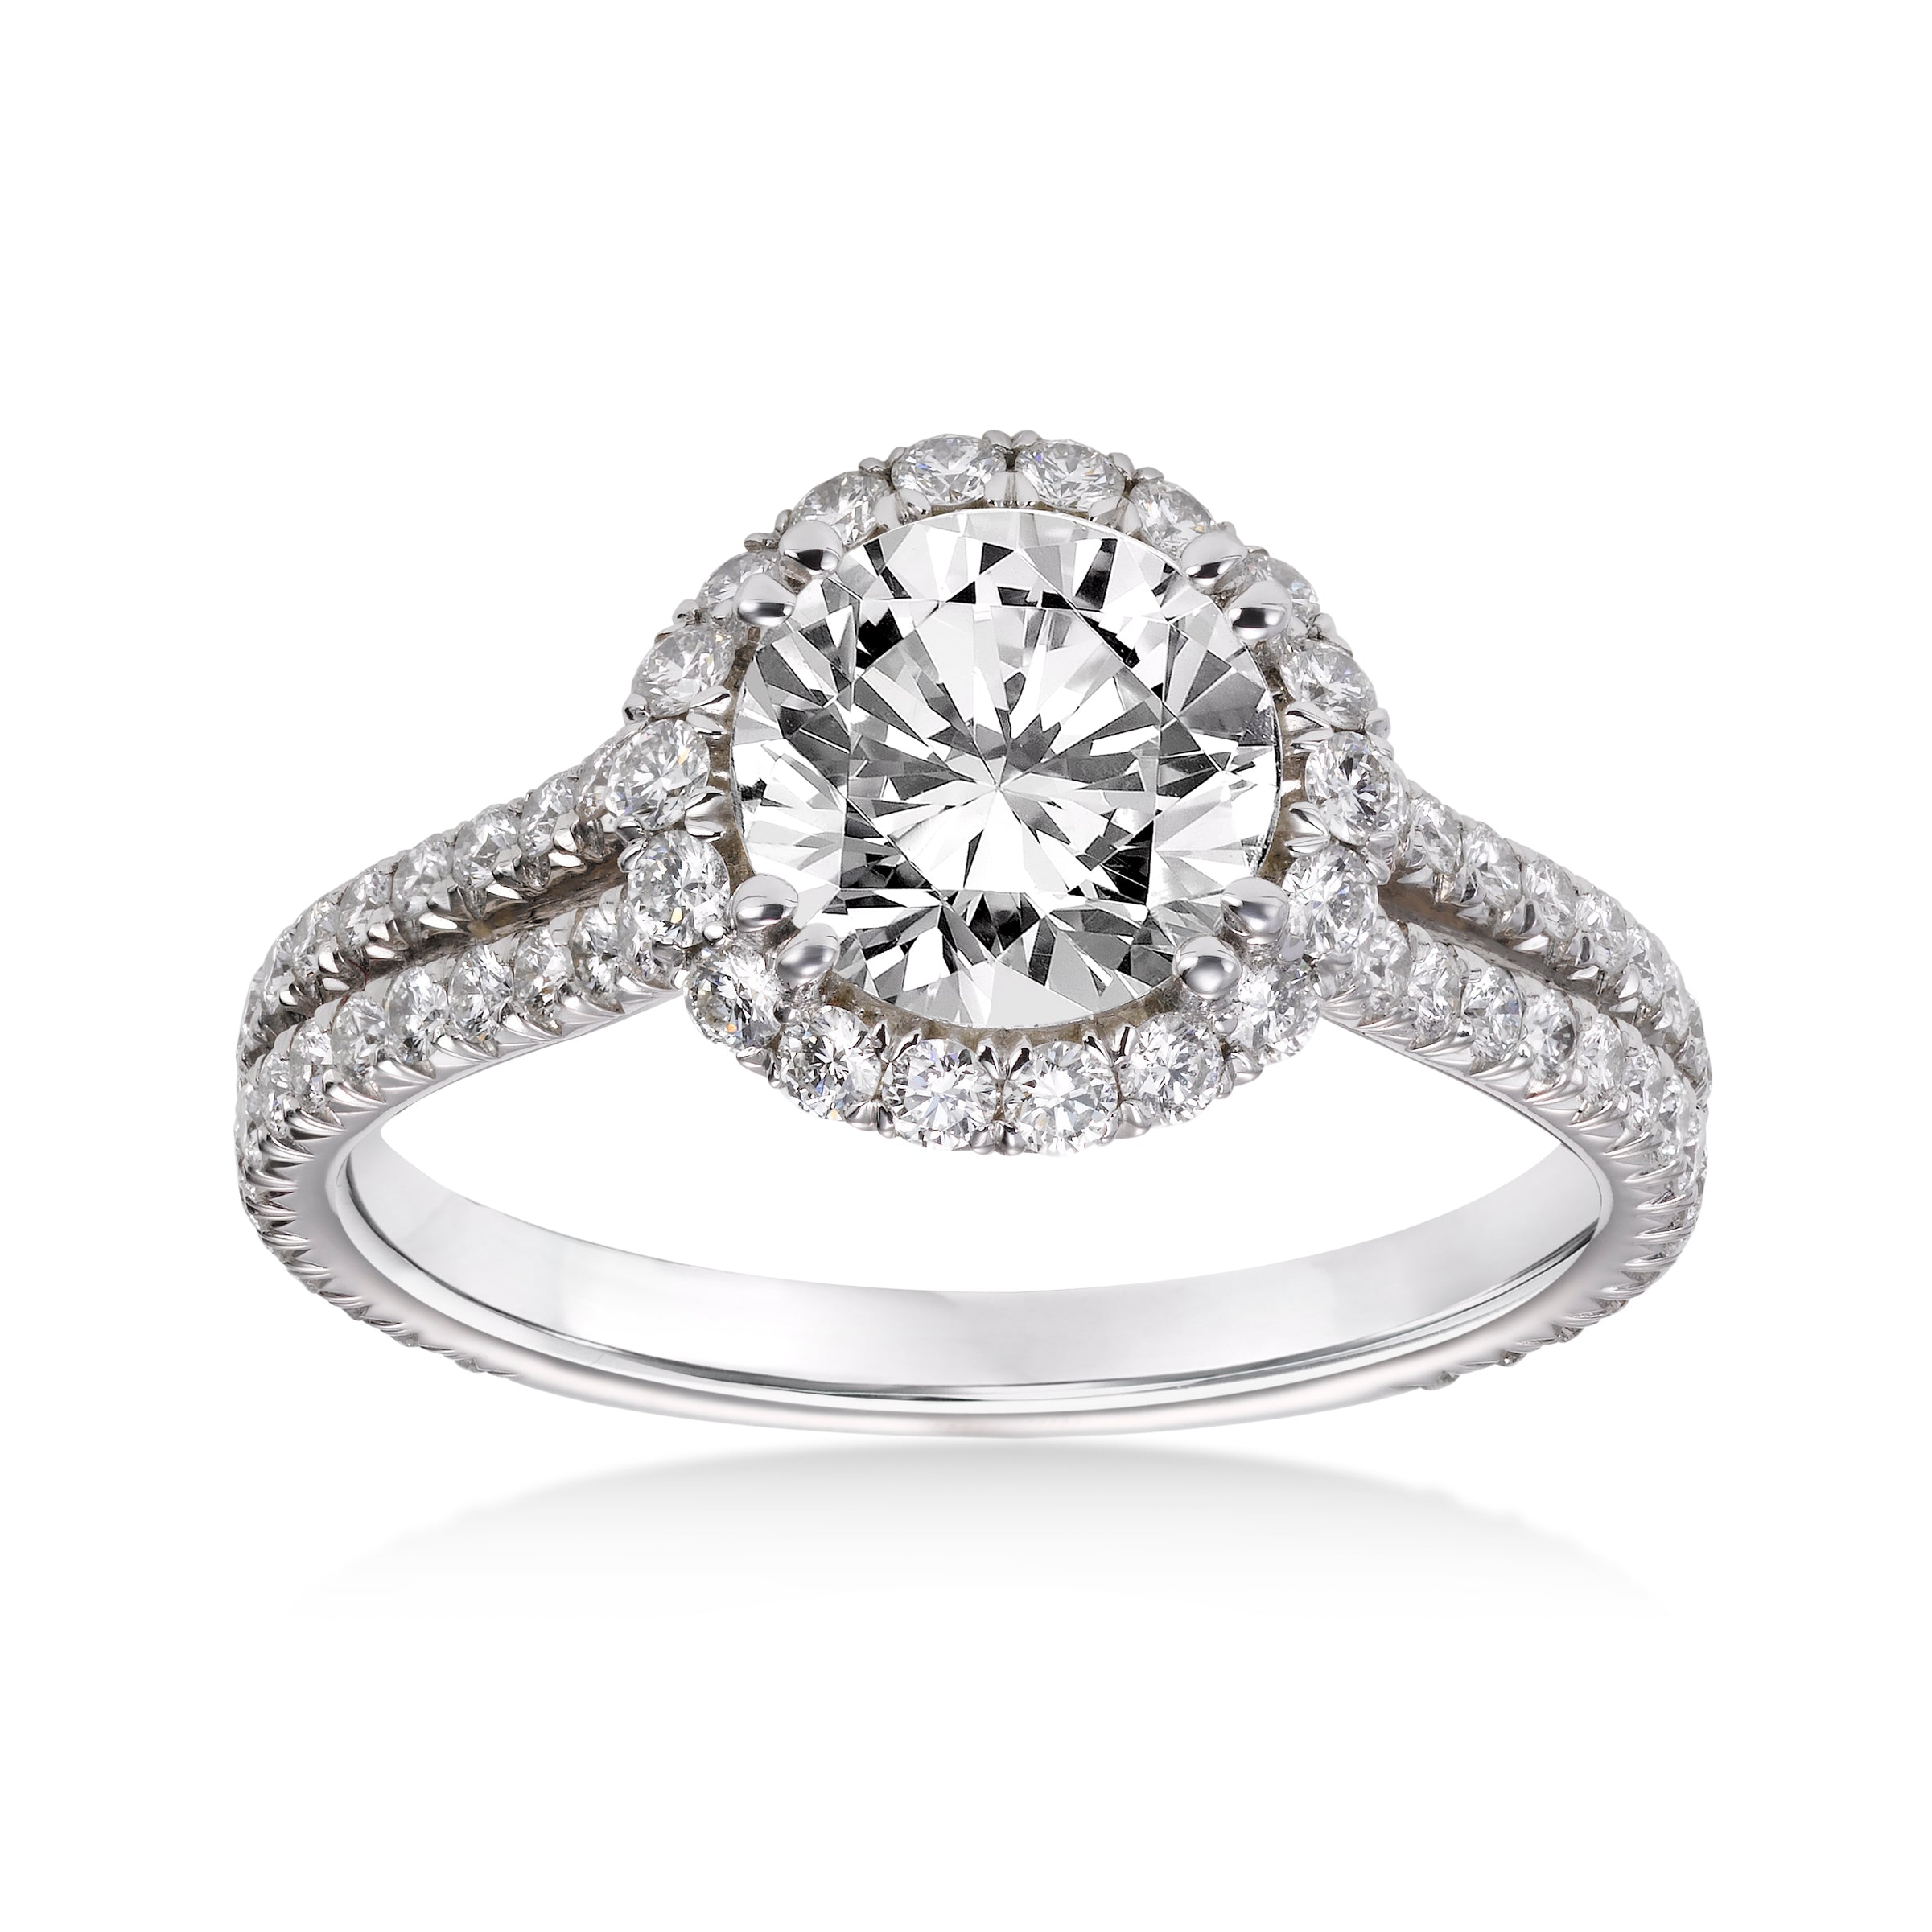 Micropavé Diamond Ring with Halo, Platinum